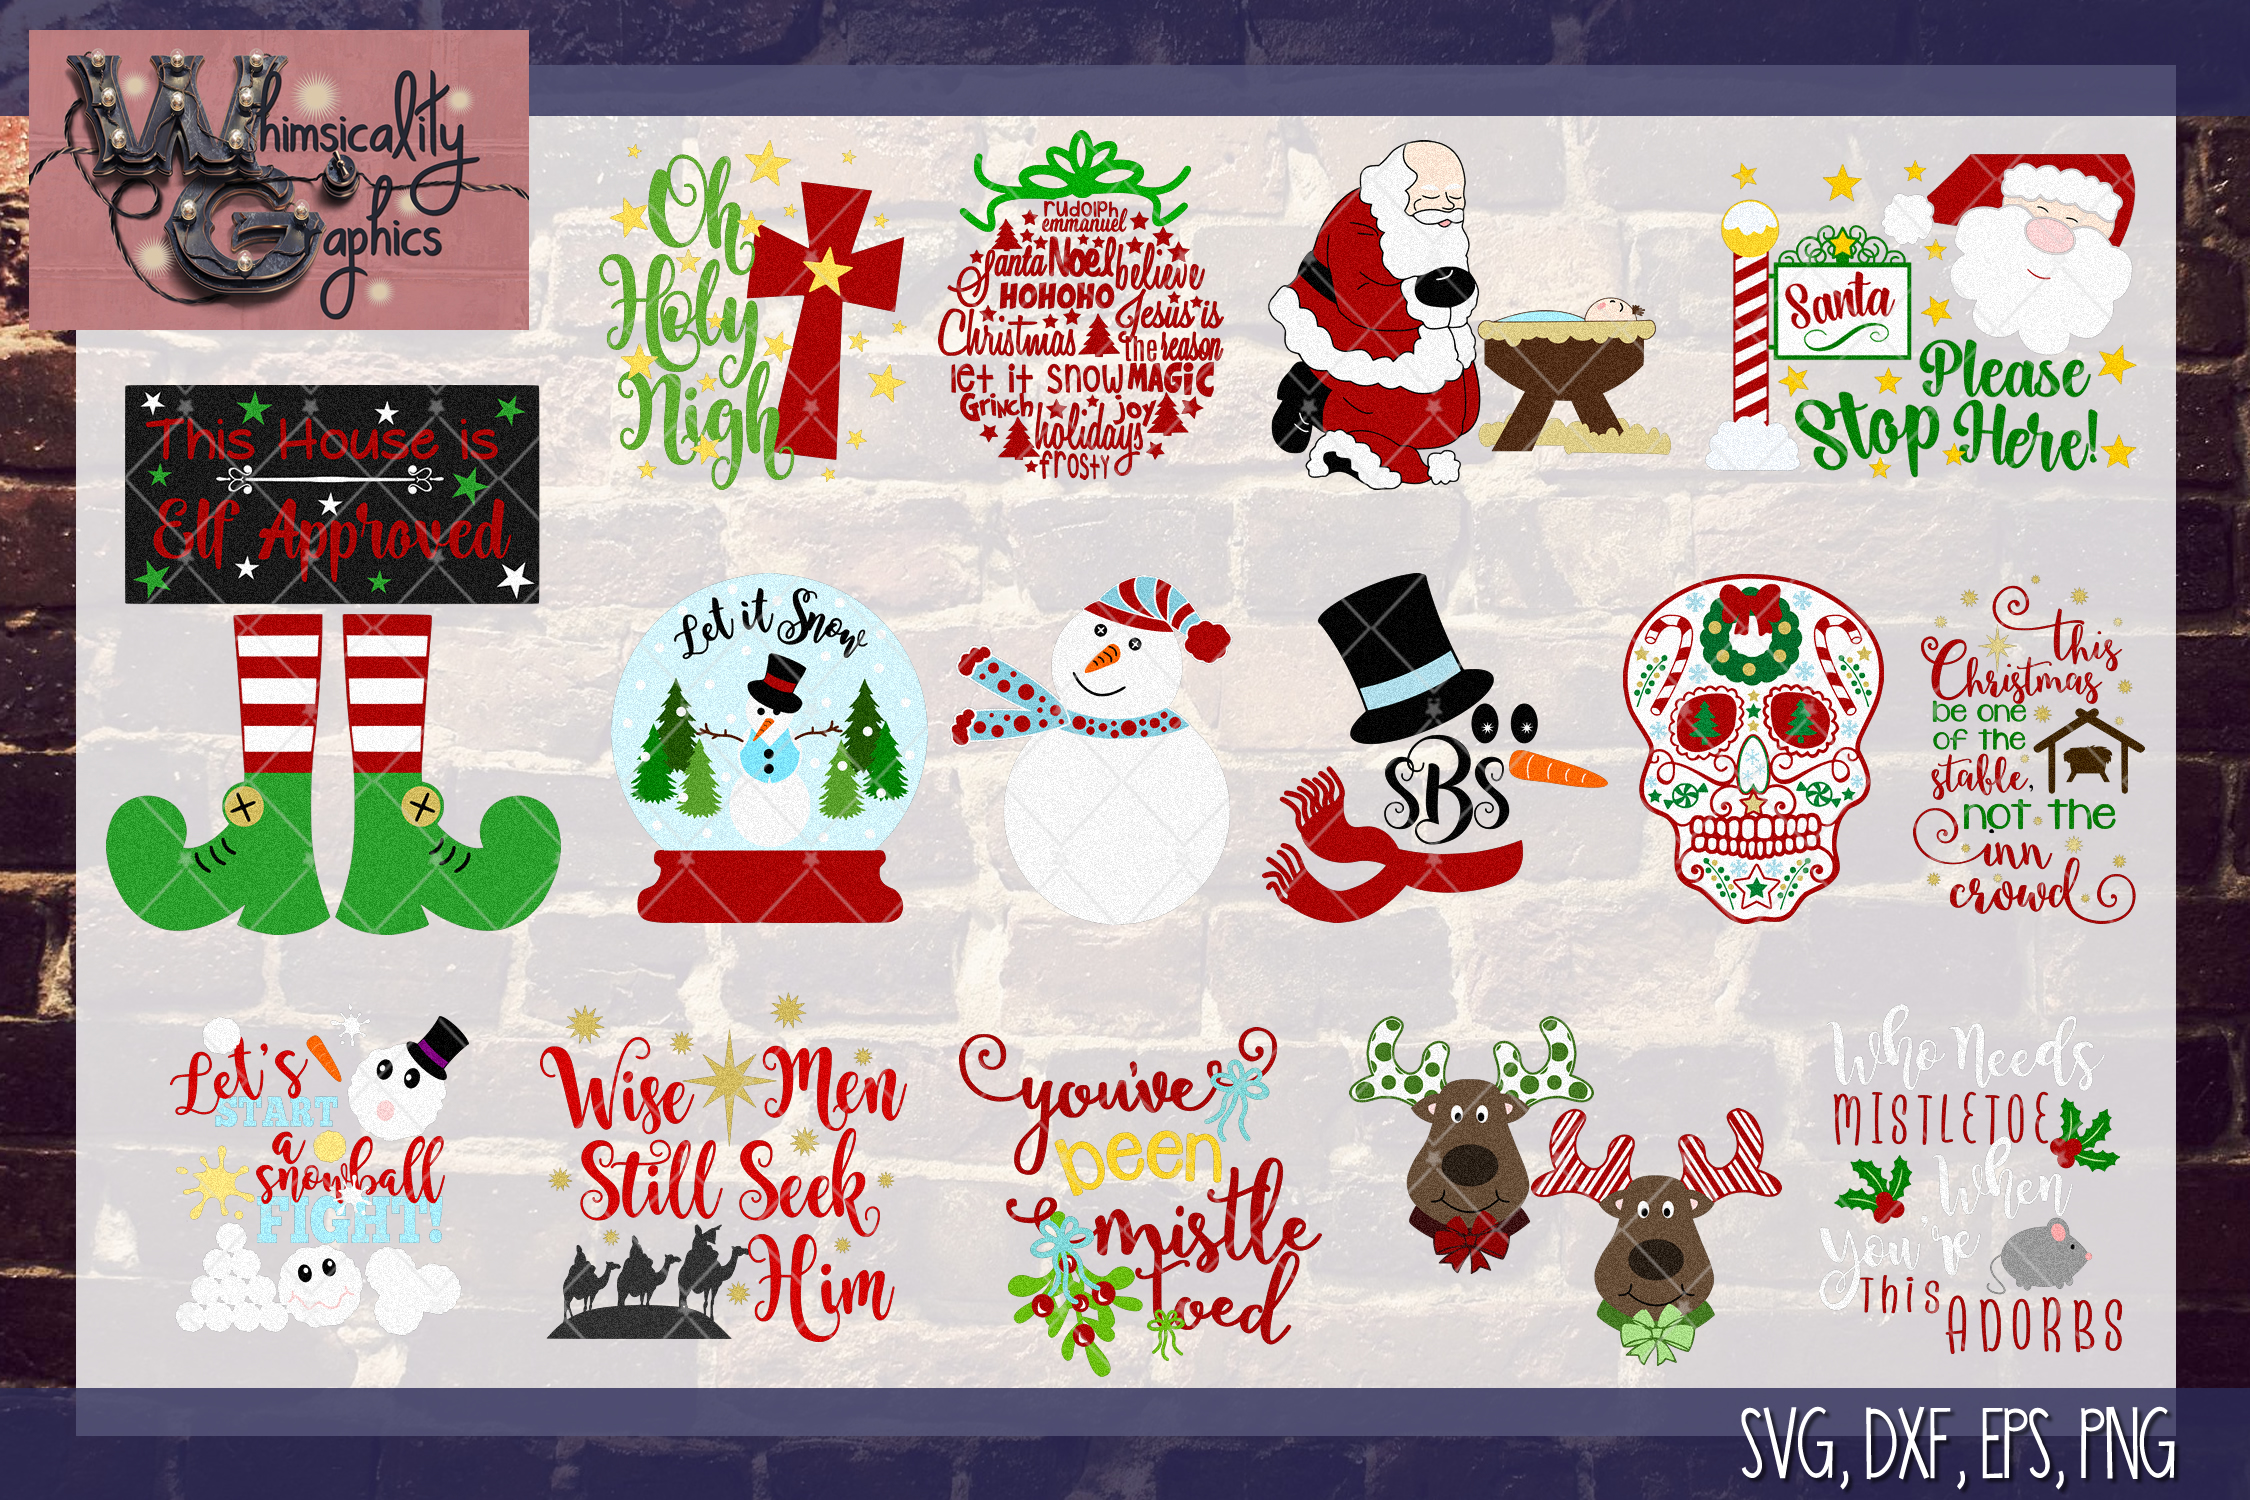 2018 Ultimate Christmas Bundle SVG, DXF, PNG, EPS Comm & Per example image 4